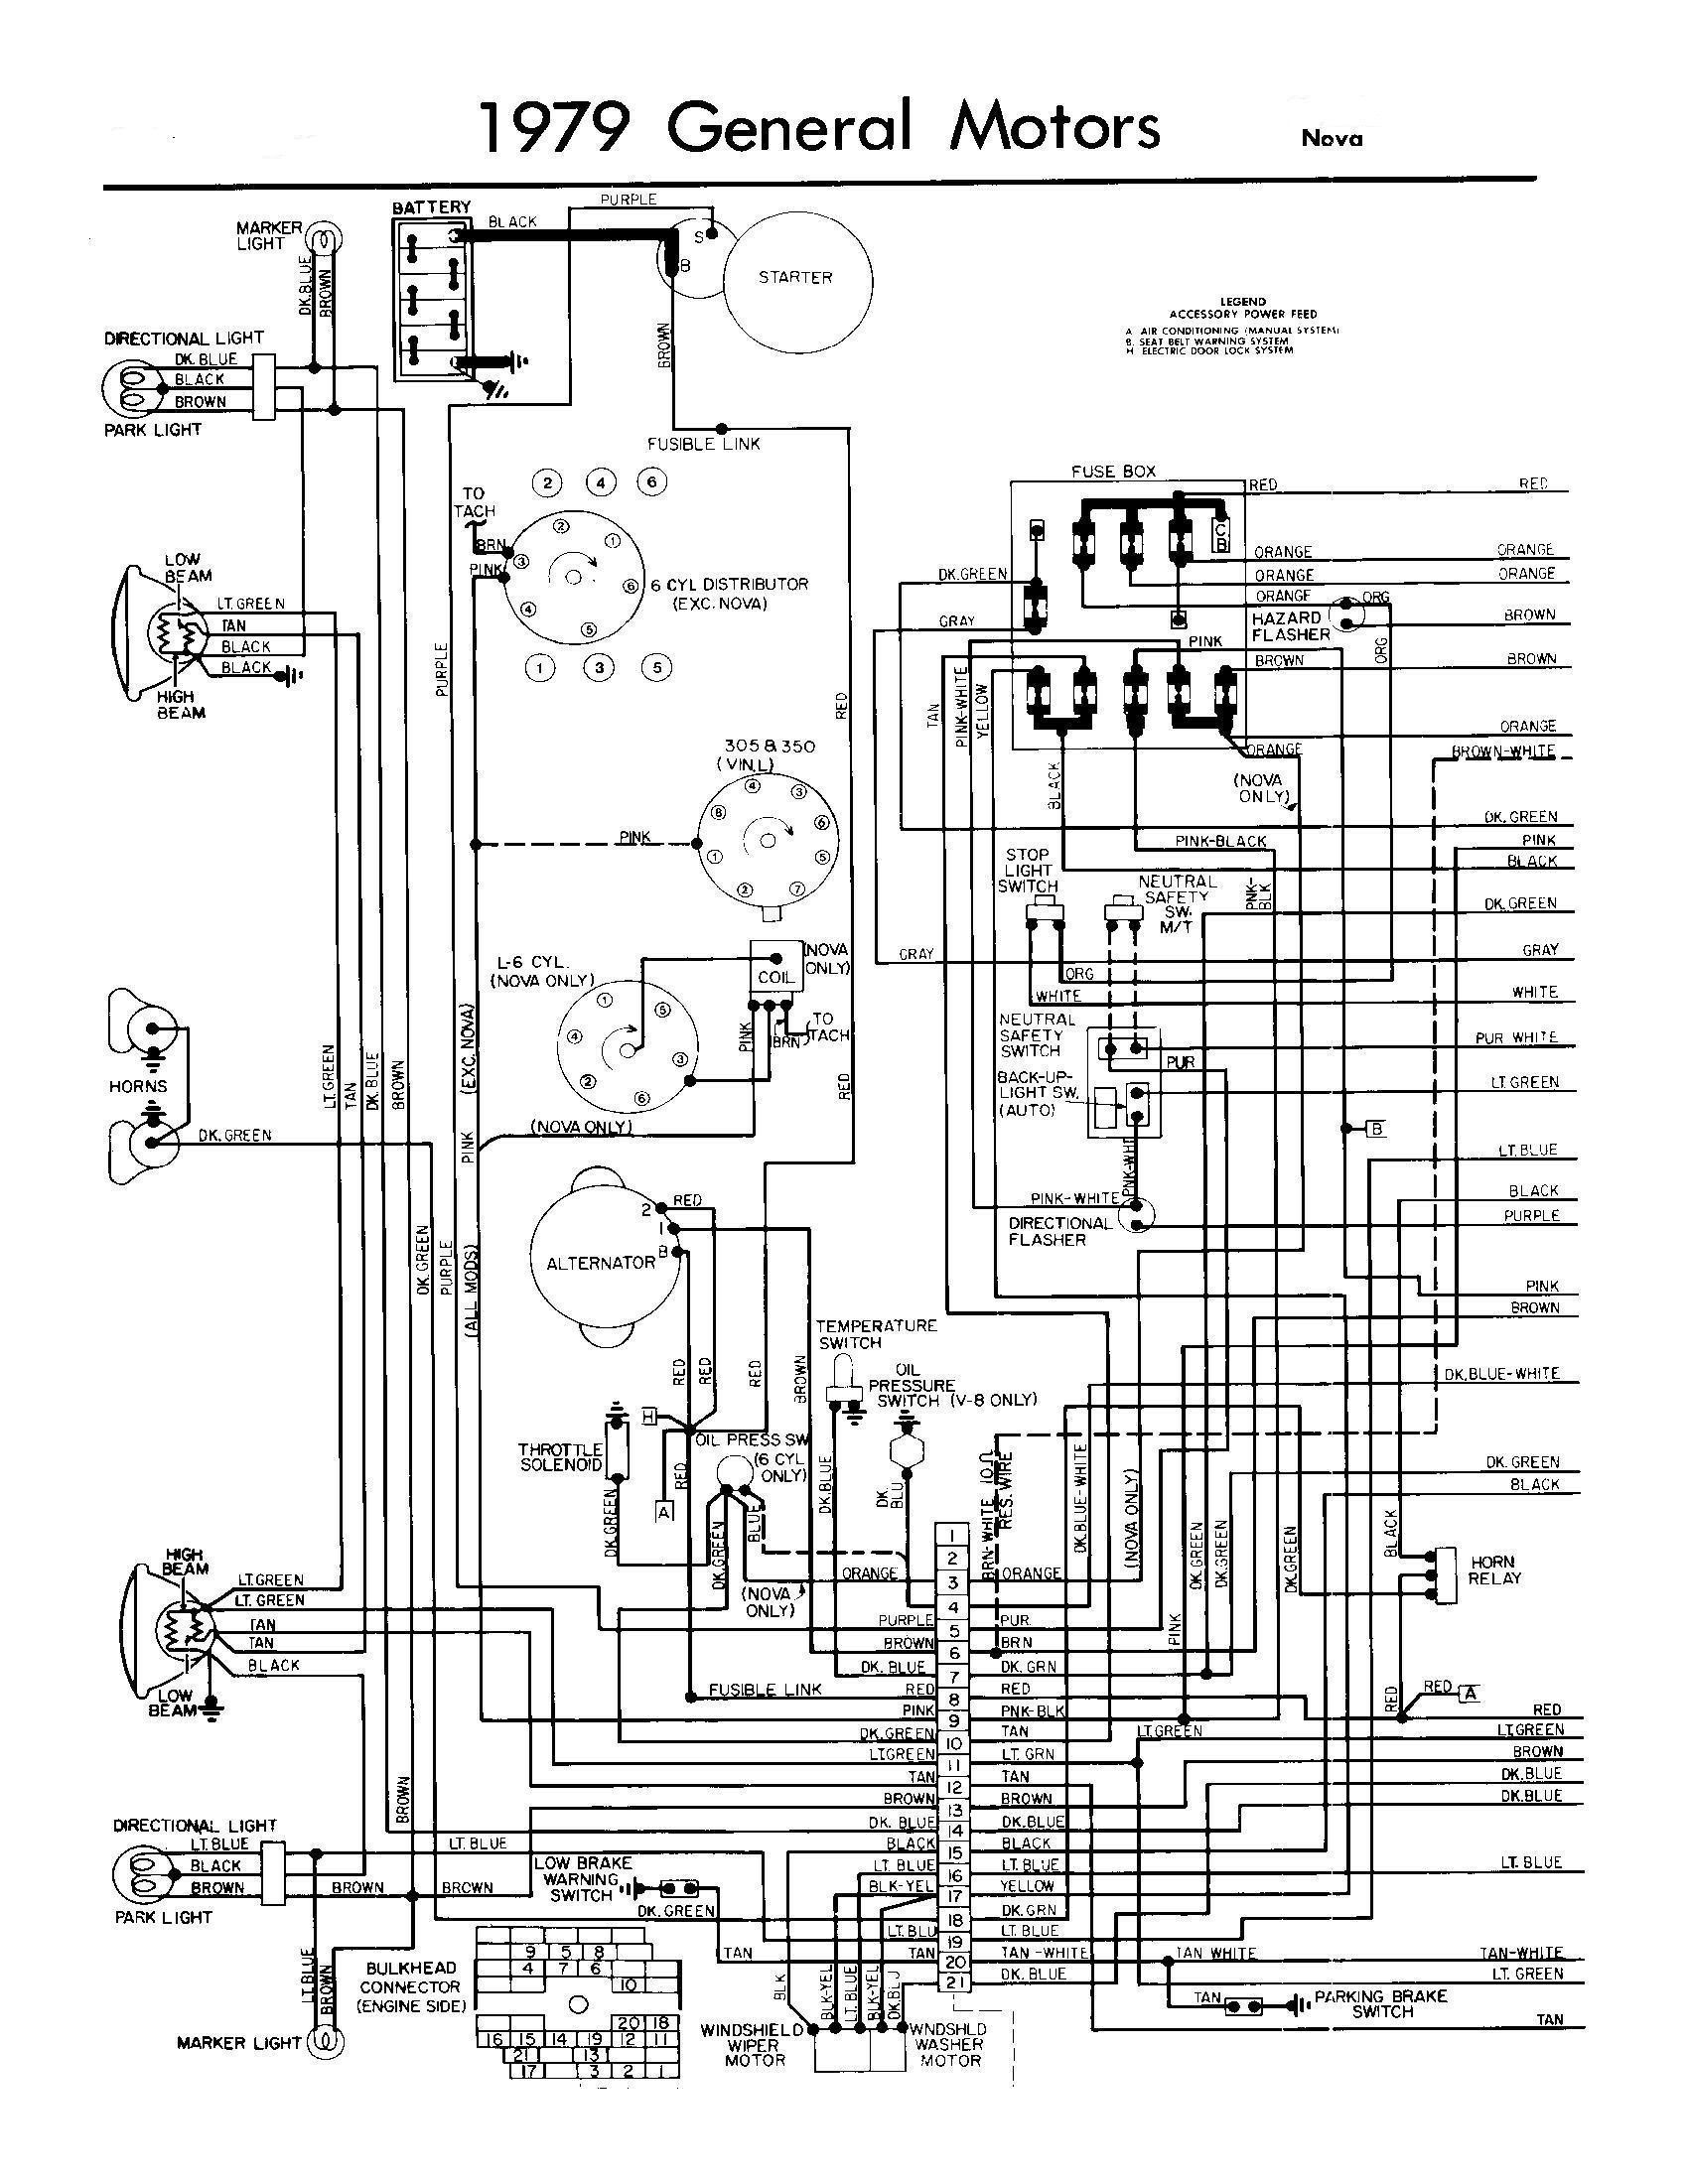 1973 roadrunner steering column wiring diagram for trusted rh sarome co  1967 Nova Steering Column Rebuild 67 Nova Steering Column Diagram